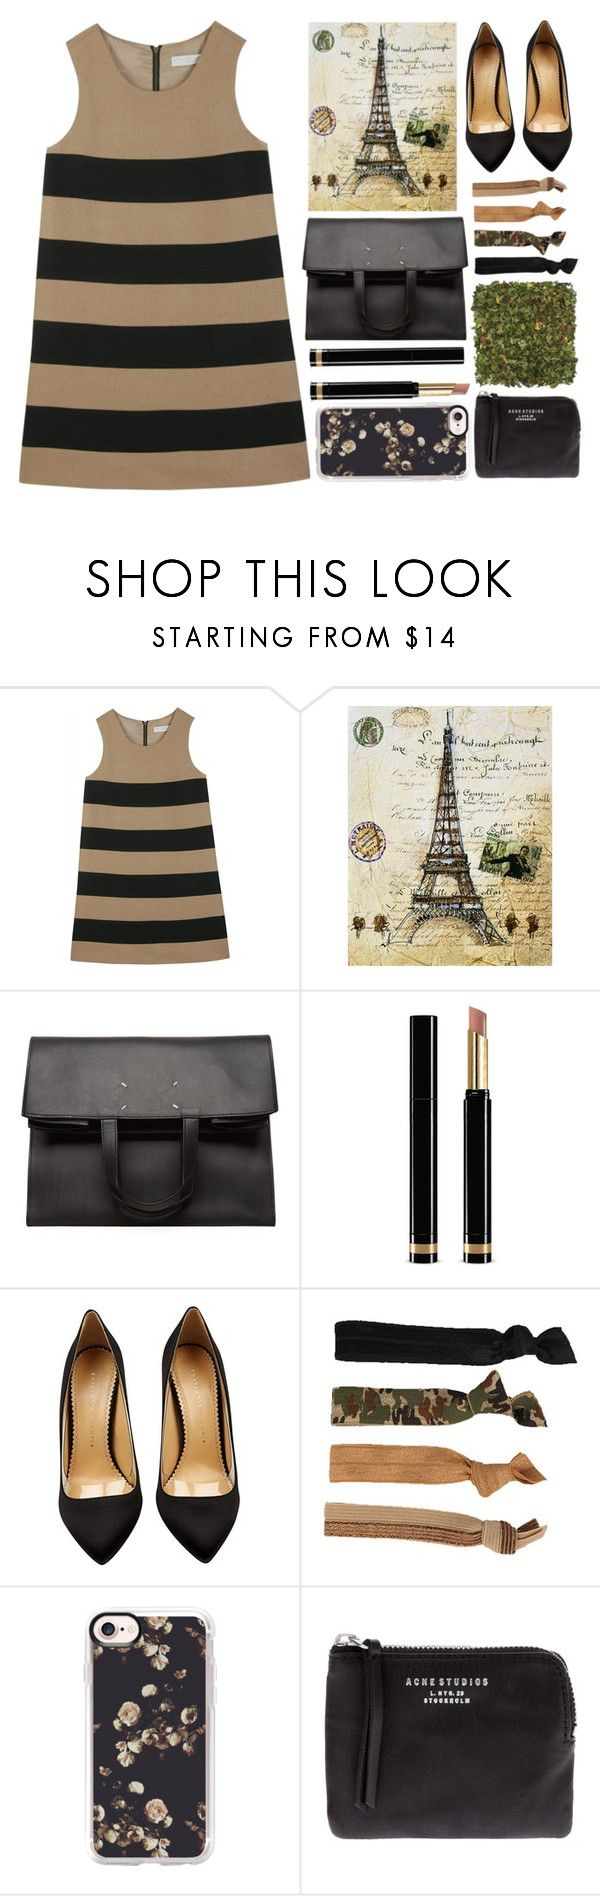 """Here's The Tea"" by emcf3548 ❤ liked on Polyvore featuring STELLA McCARTNEY, La Tour Eiffel, Maison Margiela, Gucci, Charlotte Olympia, Glam Bands, Casetify and Acne Studios"